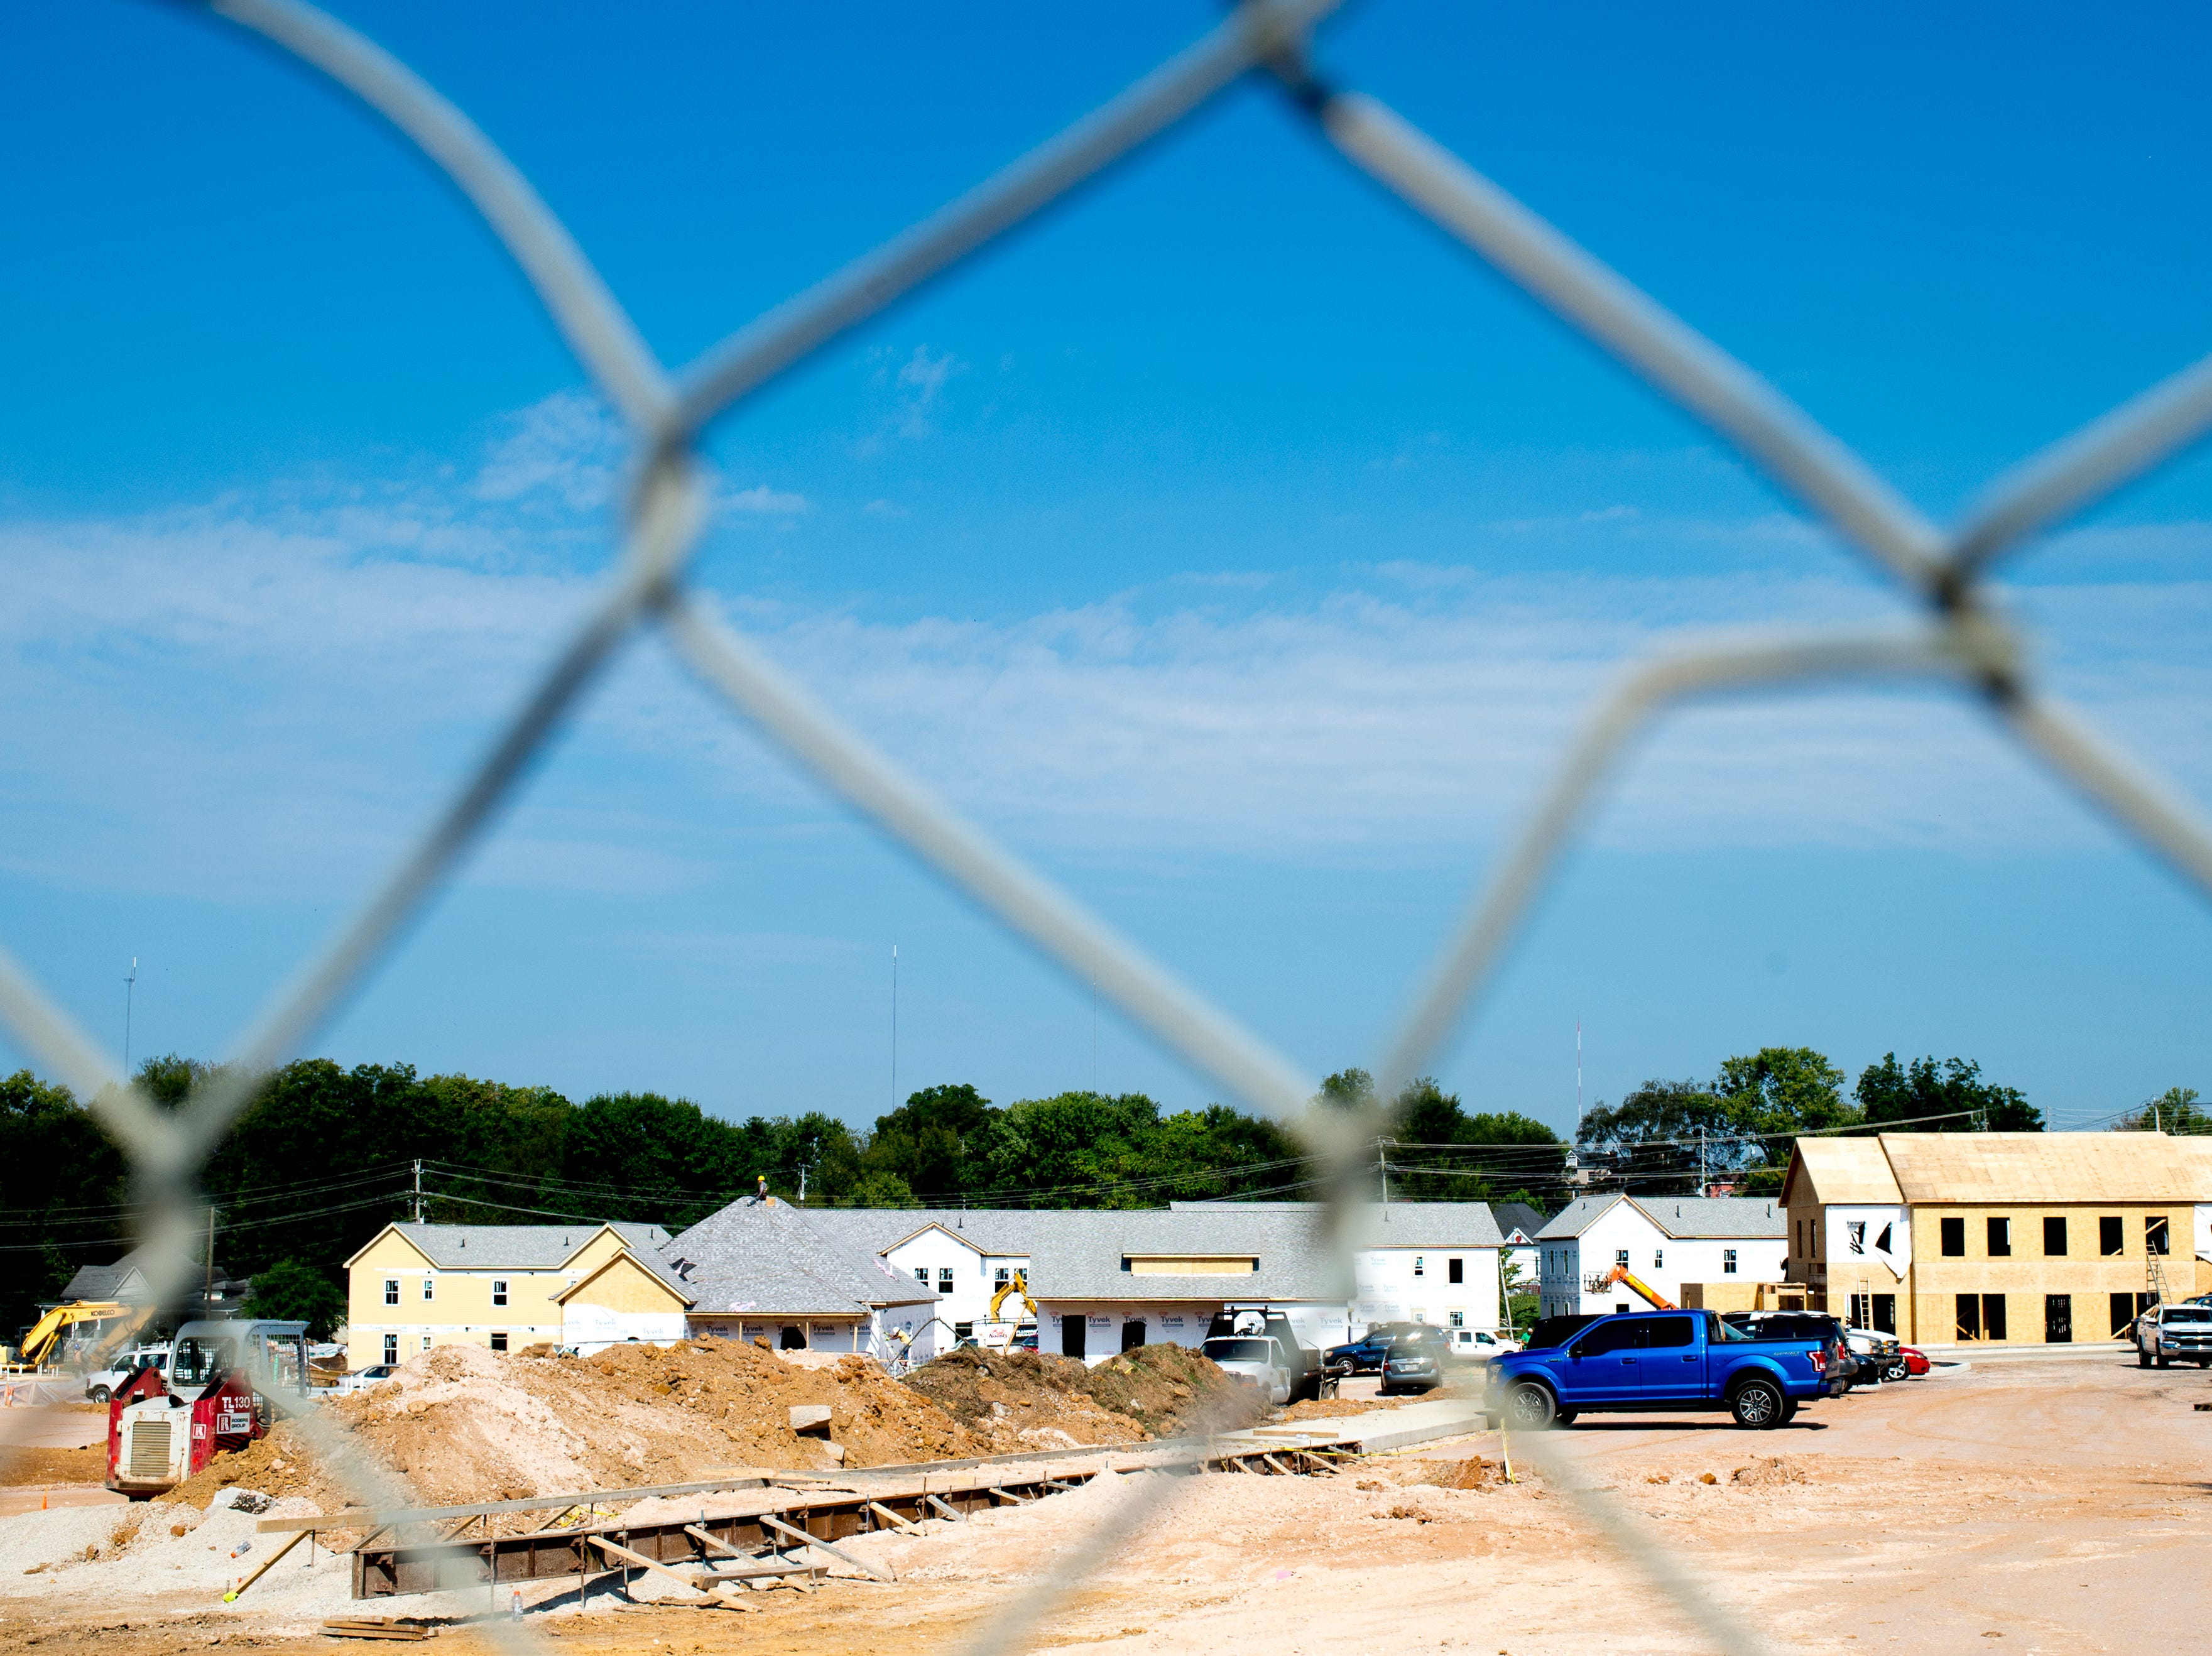 Construction continues at the Five Points Phase 3 affordable housing complex in Knoxville, Tennessee on Wednesday, September 19, 2018. The 10-building, 84-unit affordable housing complex has been part of Mayor Rogero's focus on affordable housing.